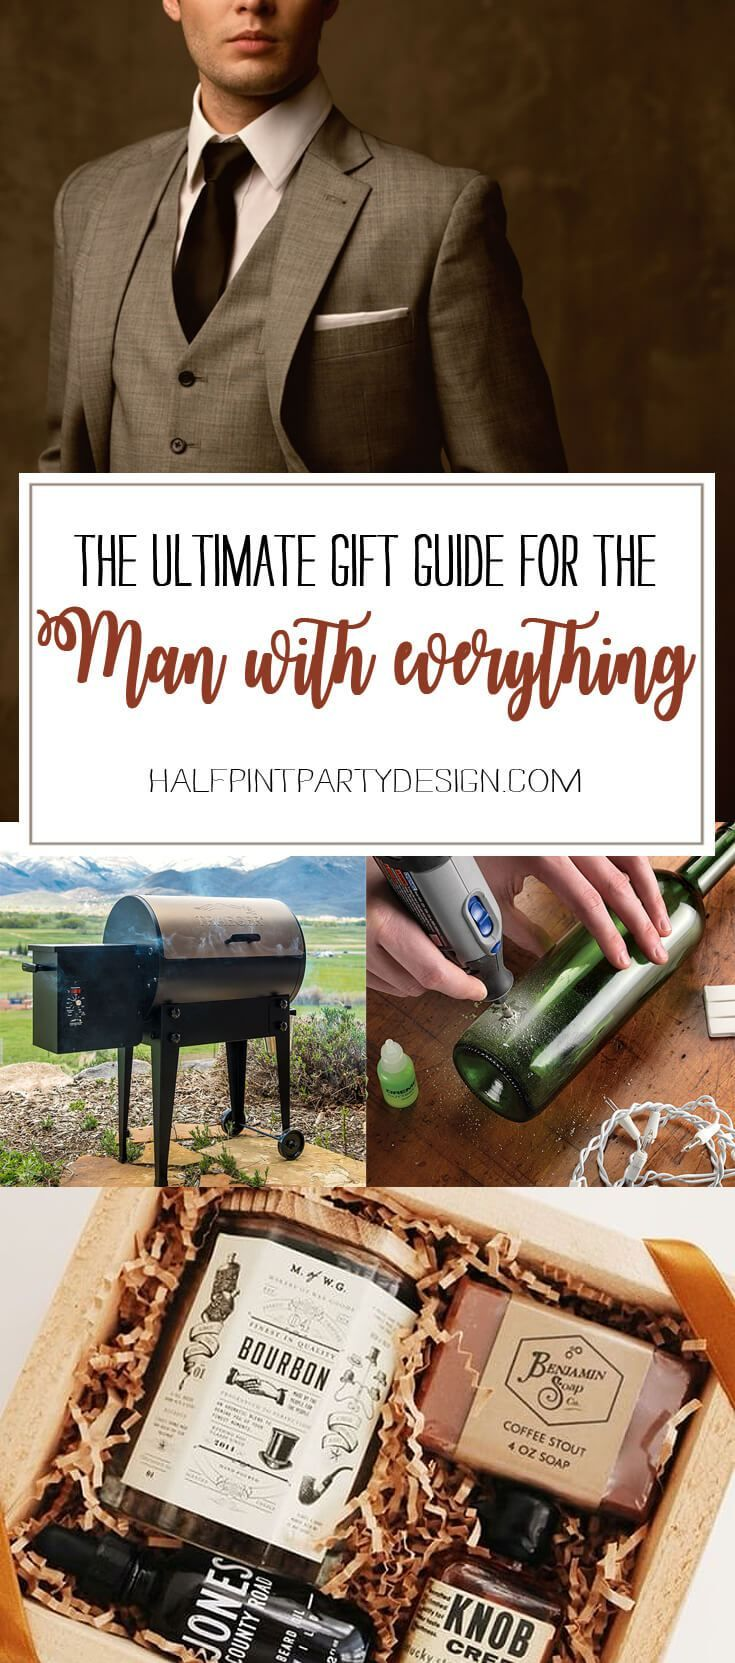 Ultimate Gift Guide for the Man who has Everything